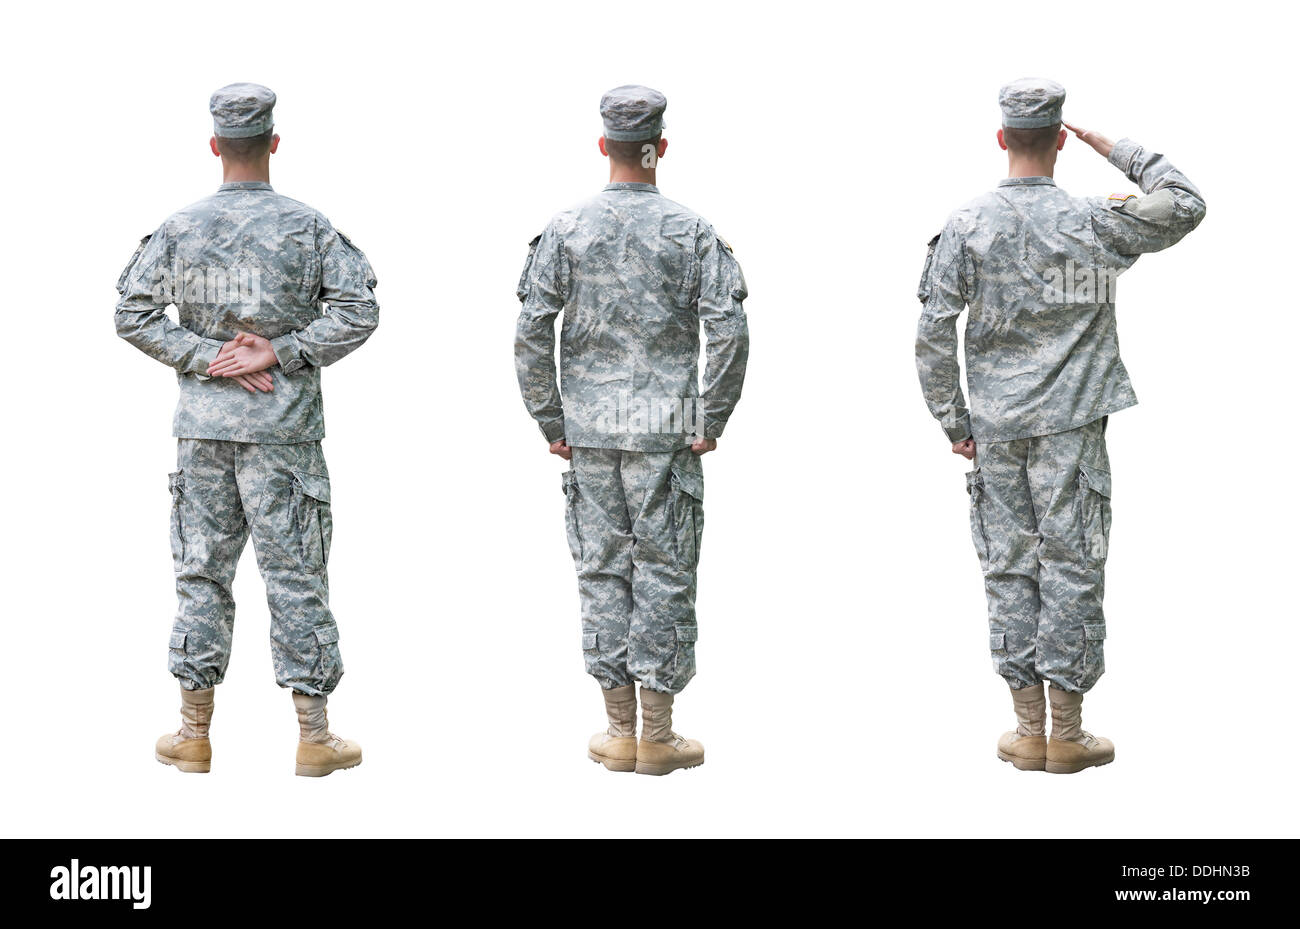 US Army soldier in three positions; Parade rest, Attention, Saluting. Back view, isolated on white background - Stock Image